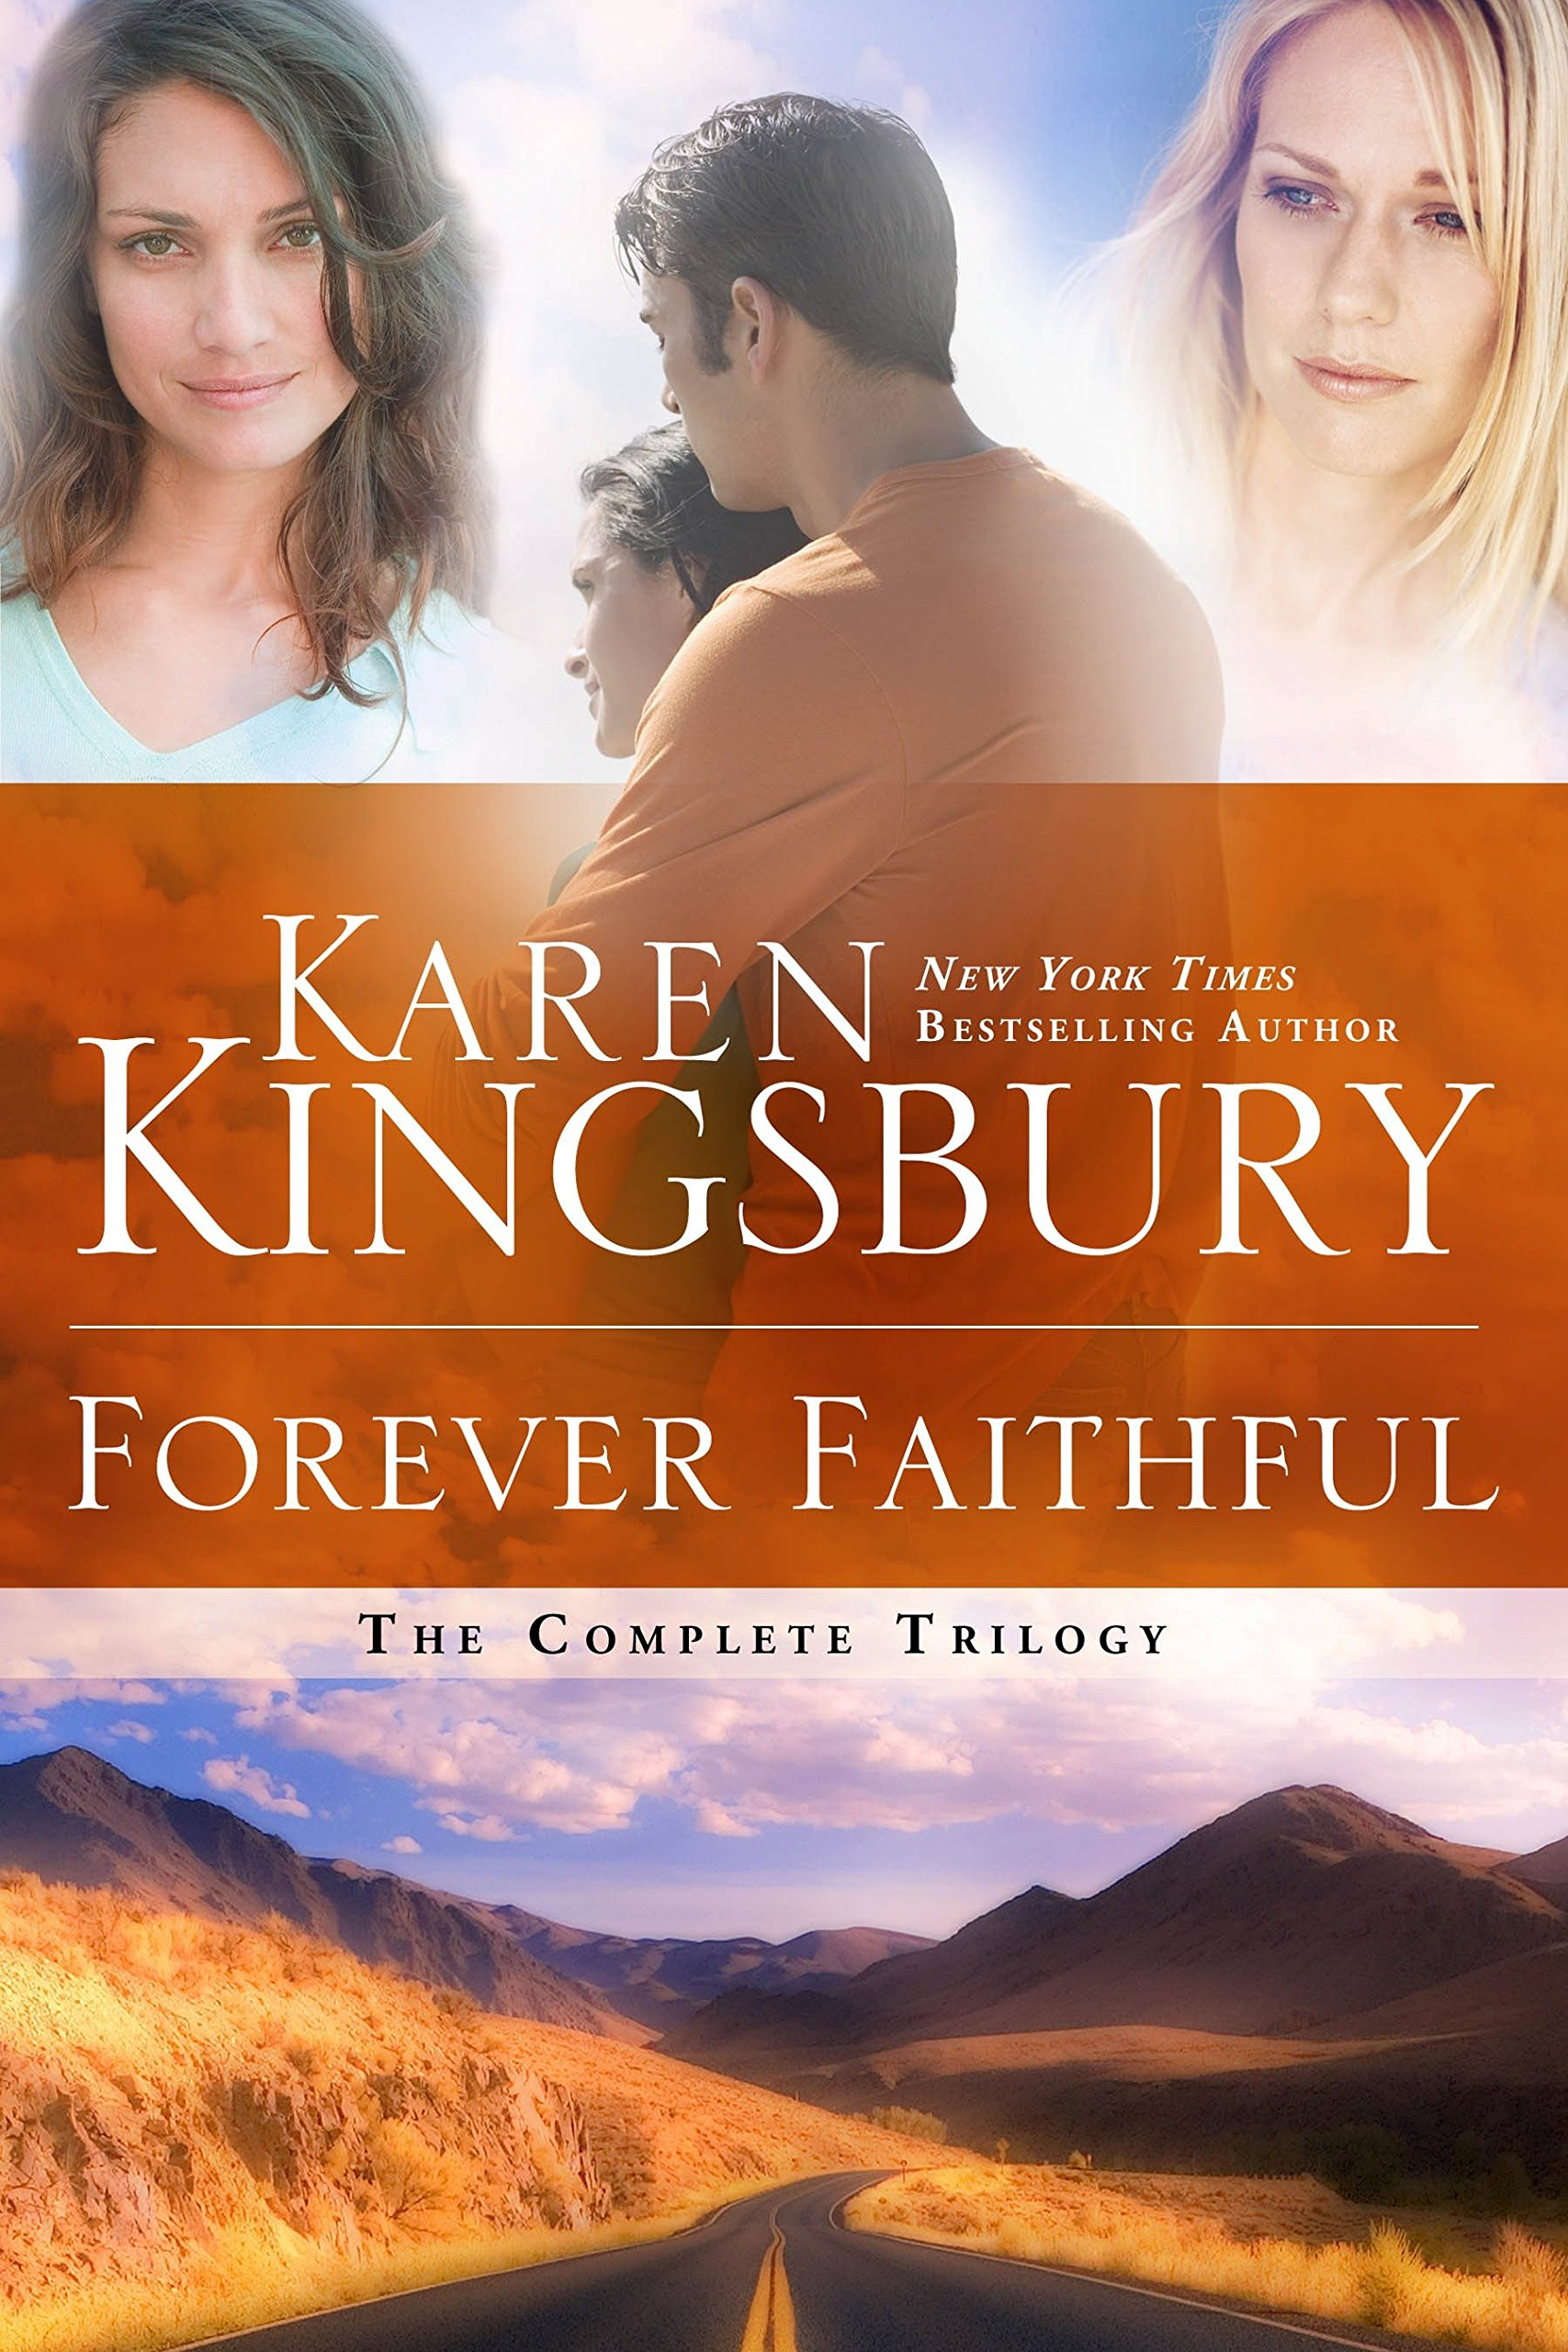 Forever Faithful: The Complete Trilogy by WaterBrook Press